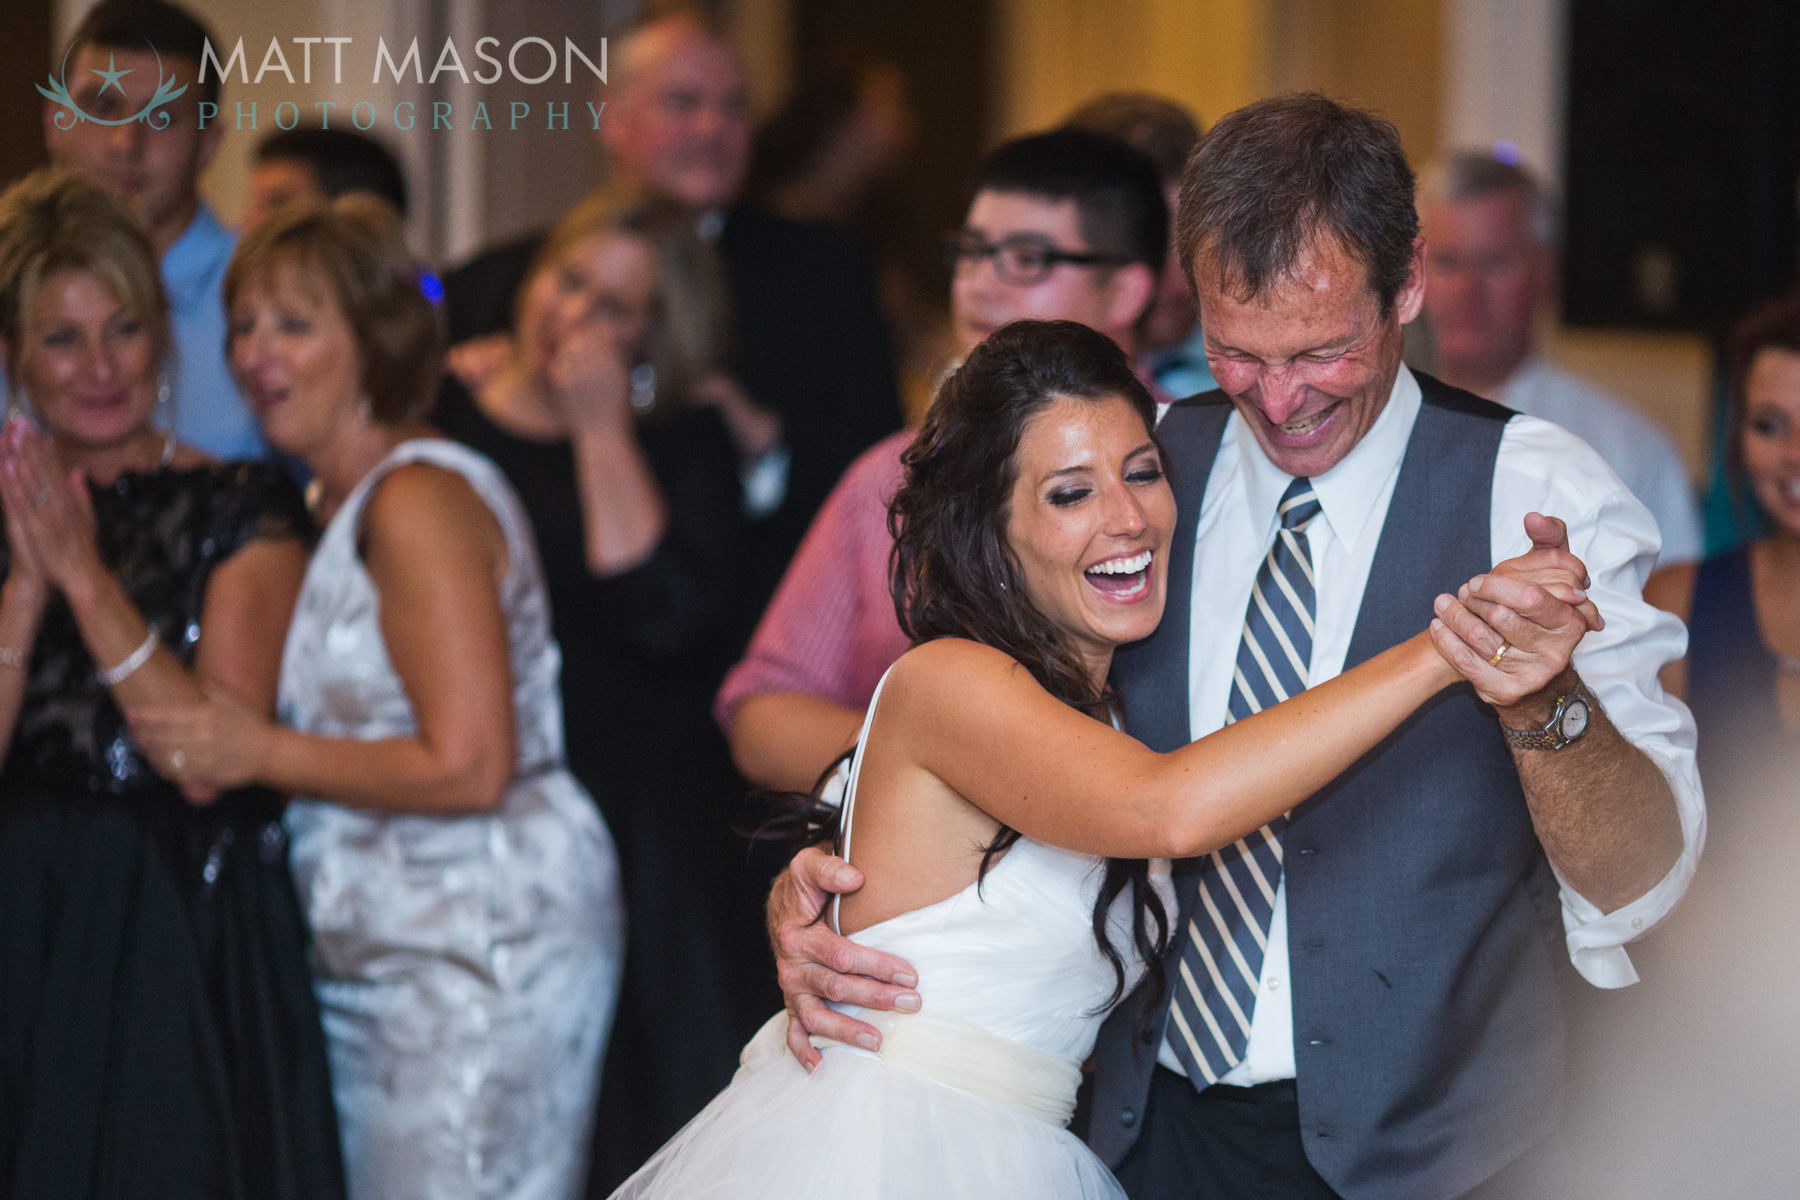 Matt-Mason-Photography-Father-Daughter-MattMasonPhotography-11.jpg